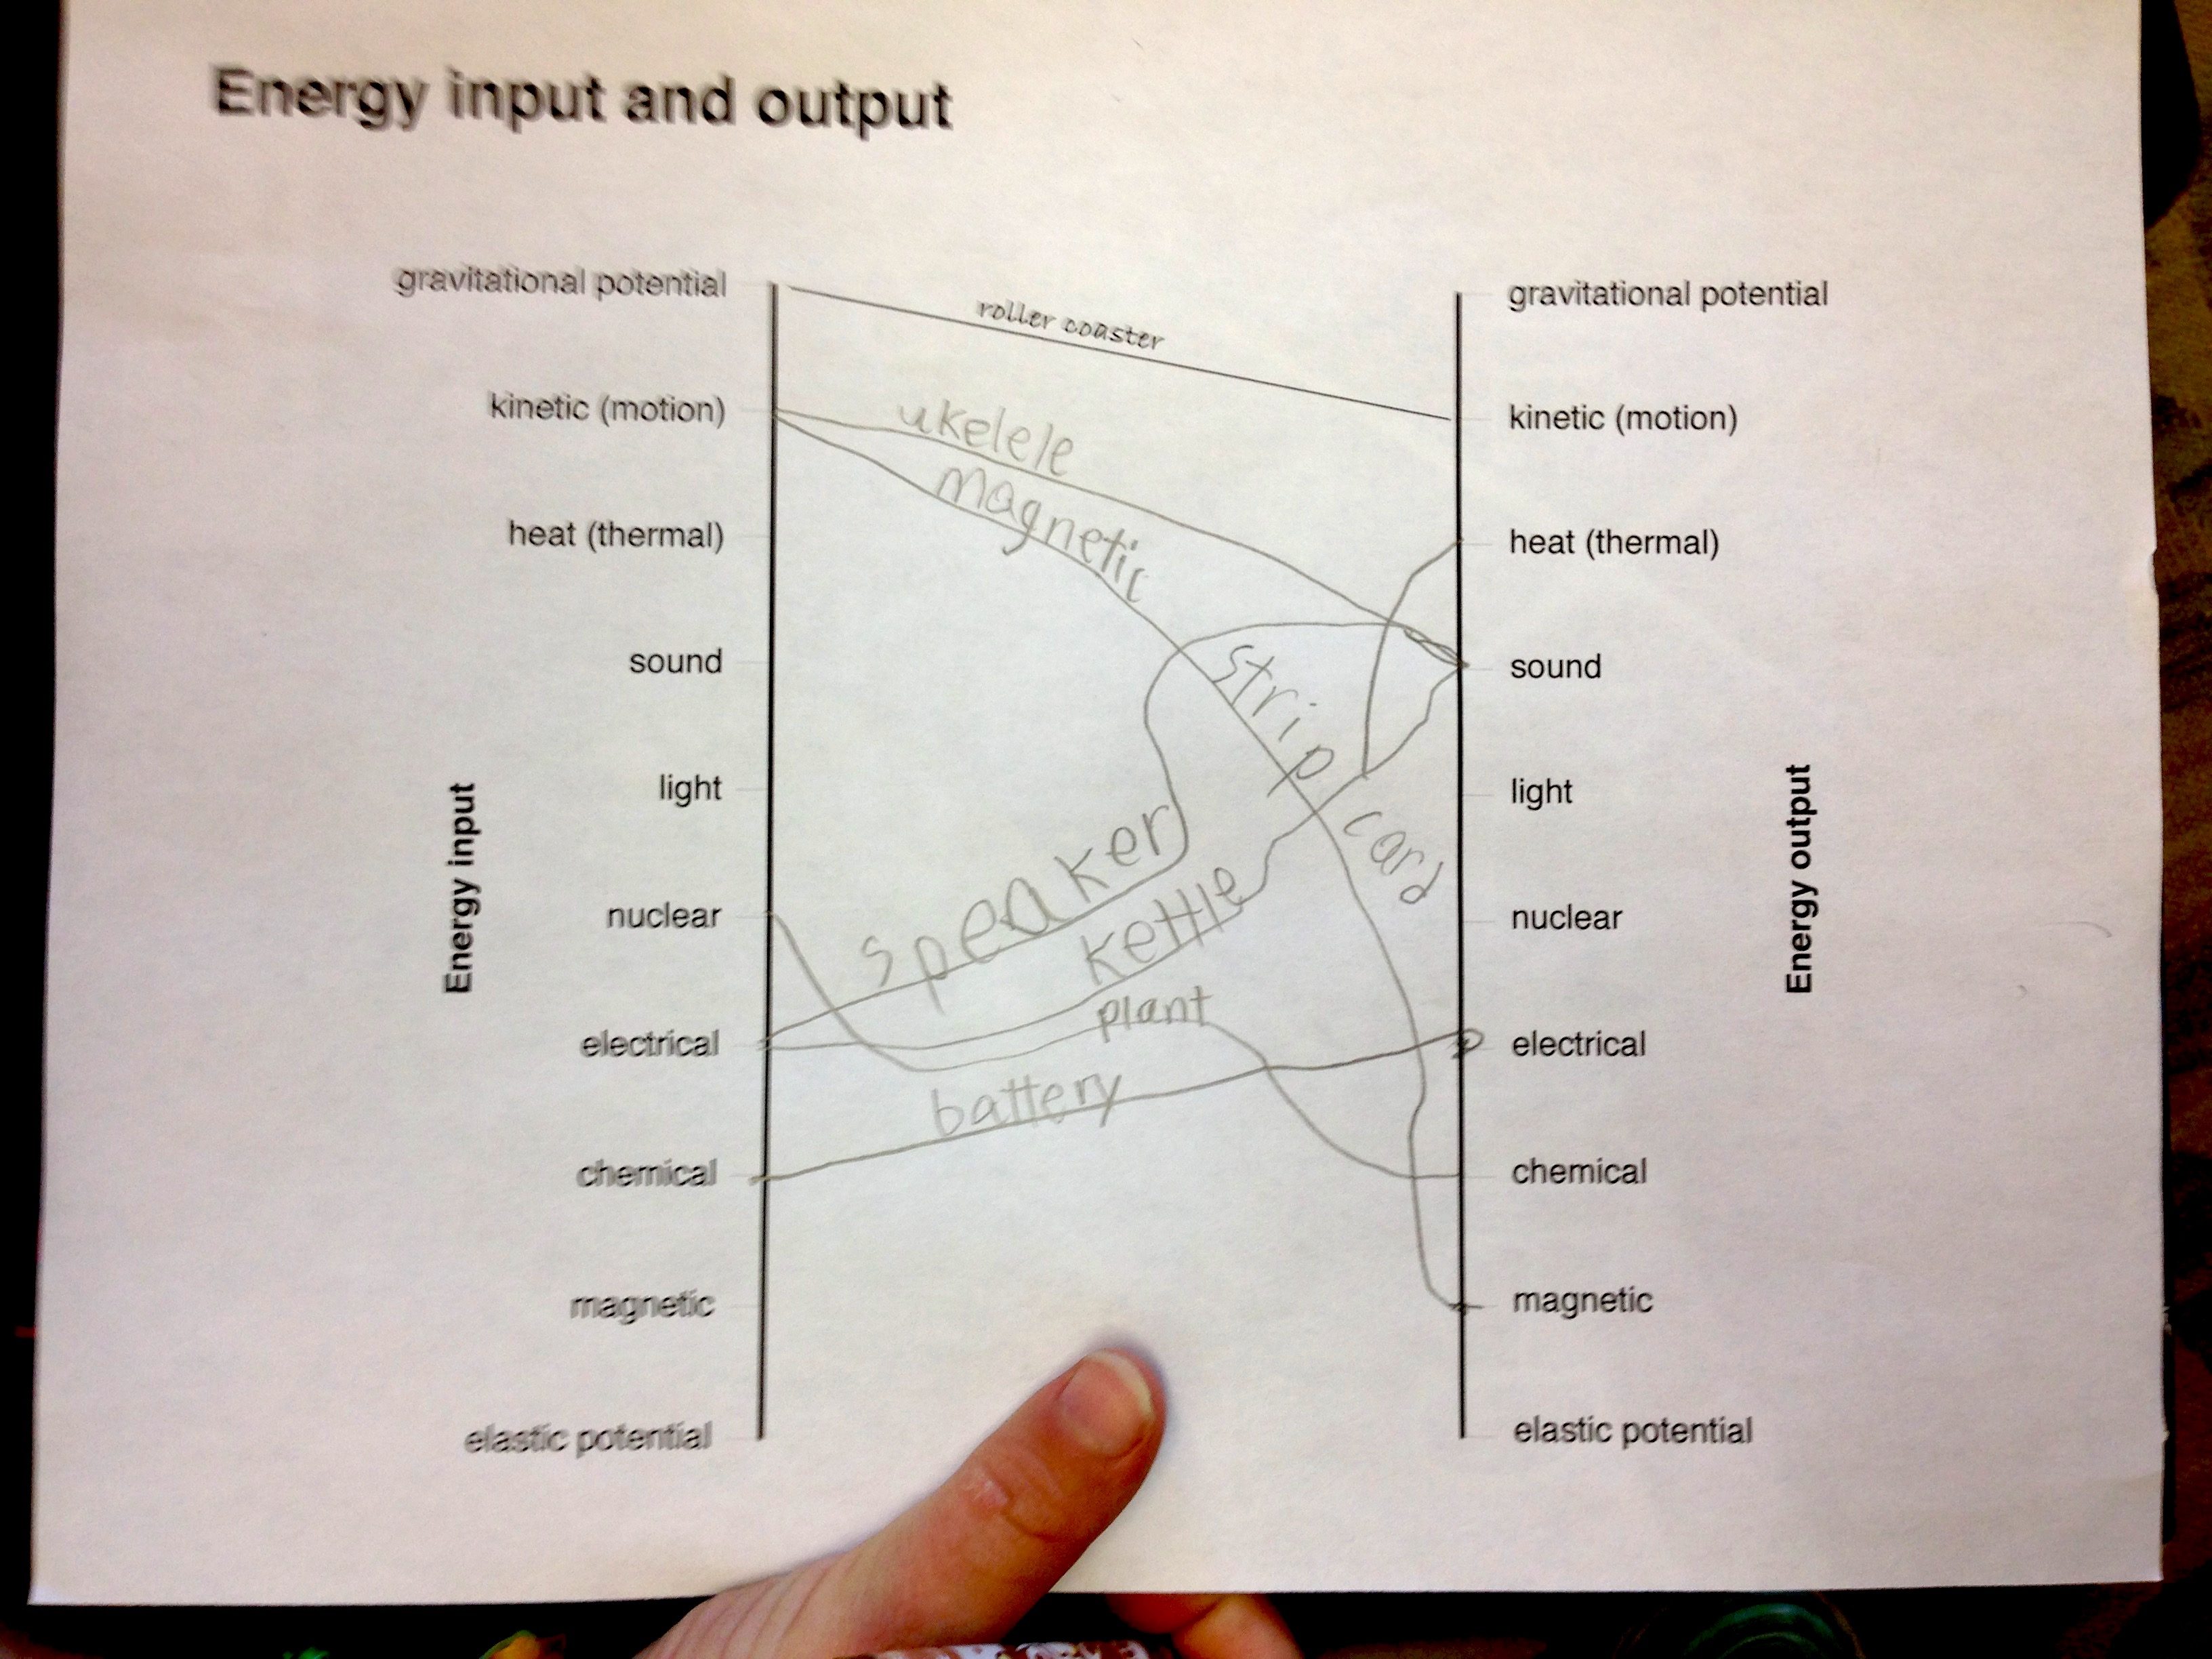 worksheet Energy Model Worksheet 4 Energy Transfer And Power Answers energy input and output in devices ingridscience ca lessons activity is transformation